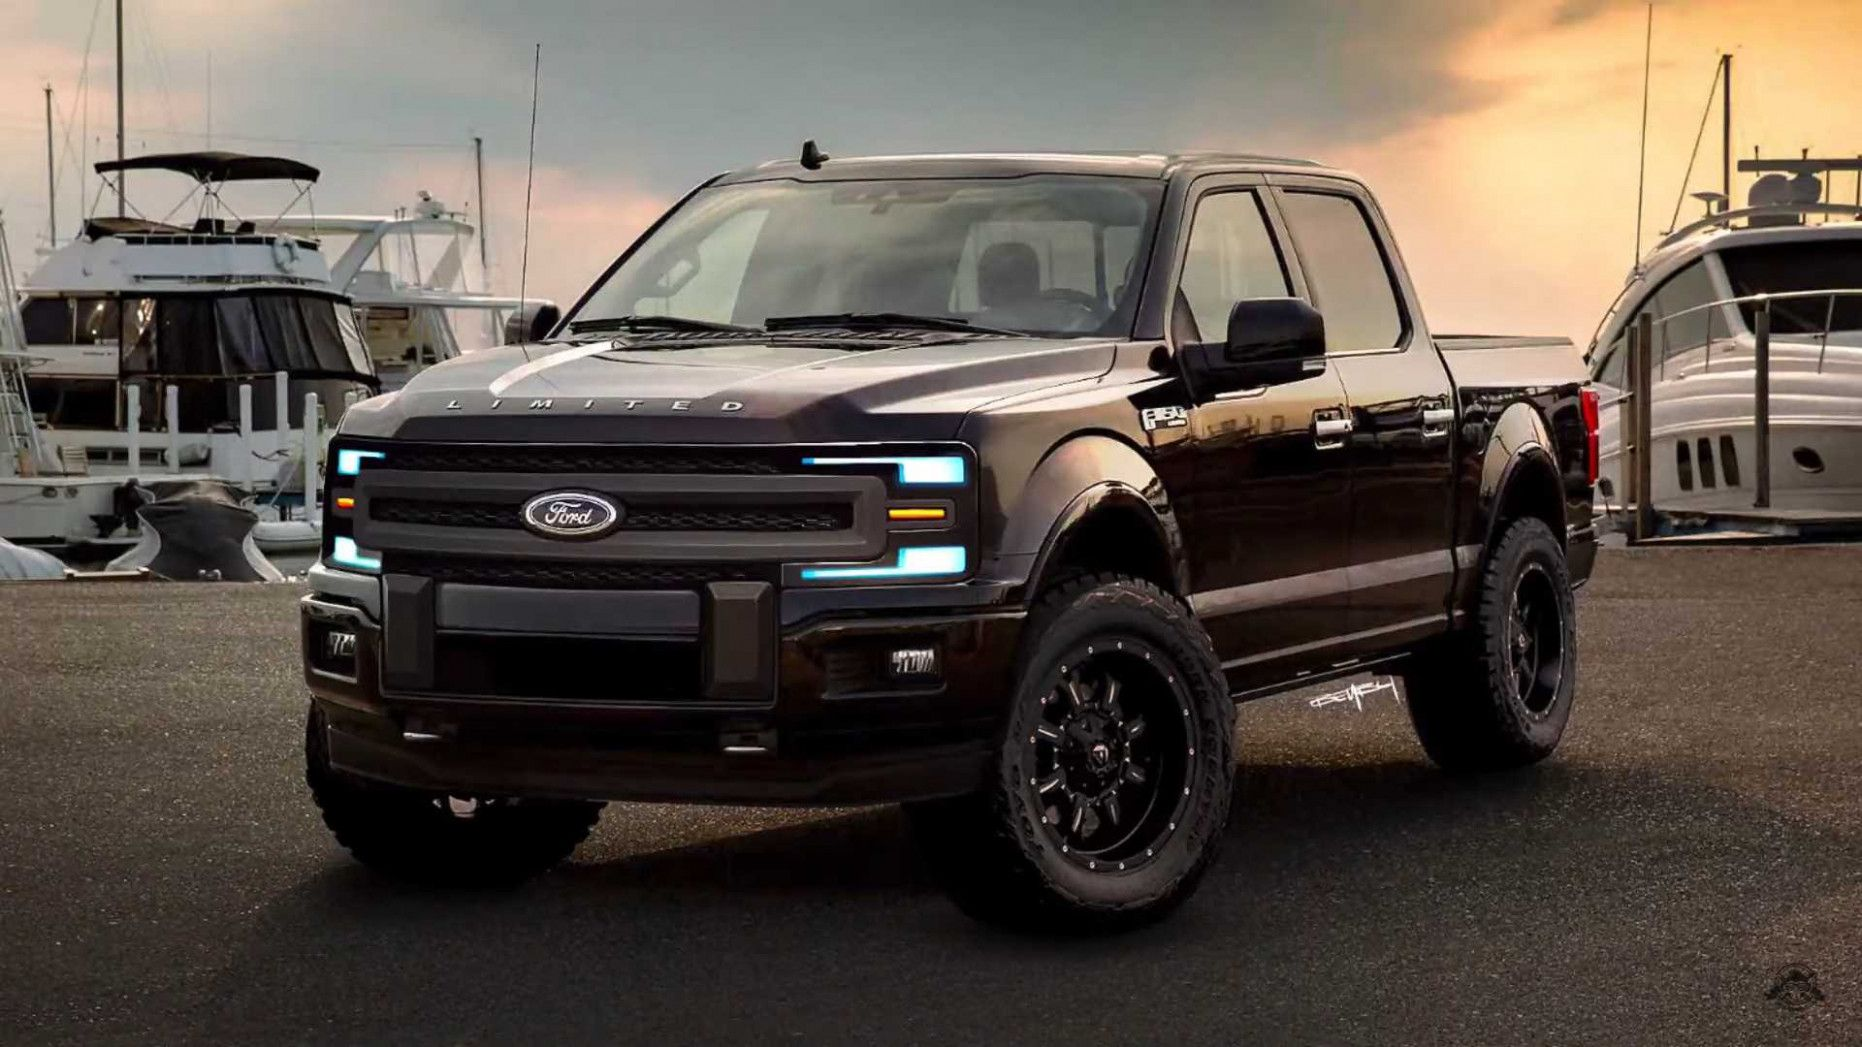 2021 Ford F150 Raptor Mpg Redesign 2021 Ford F150 Raptor Mpg